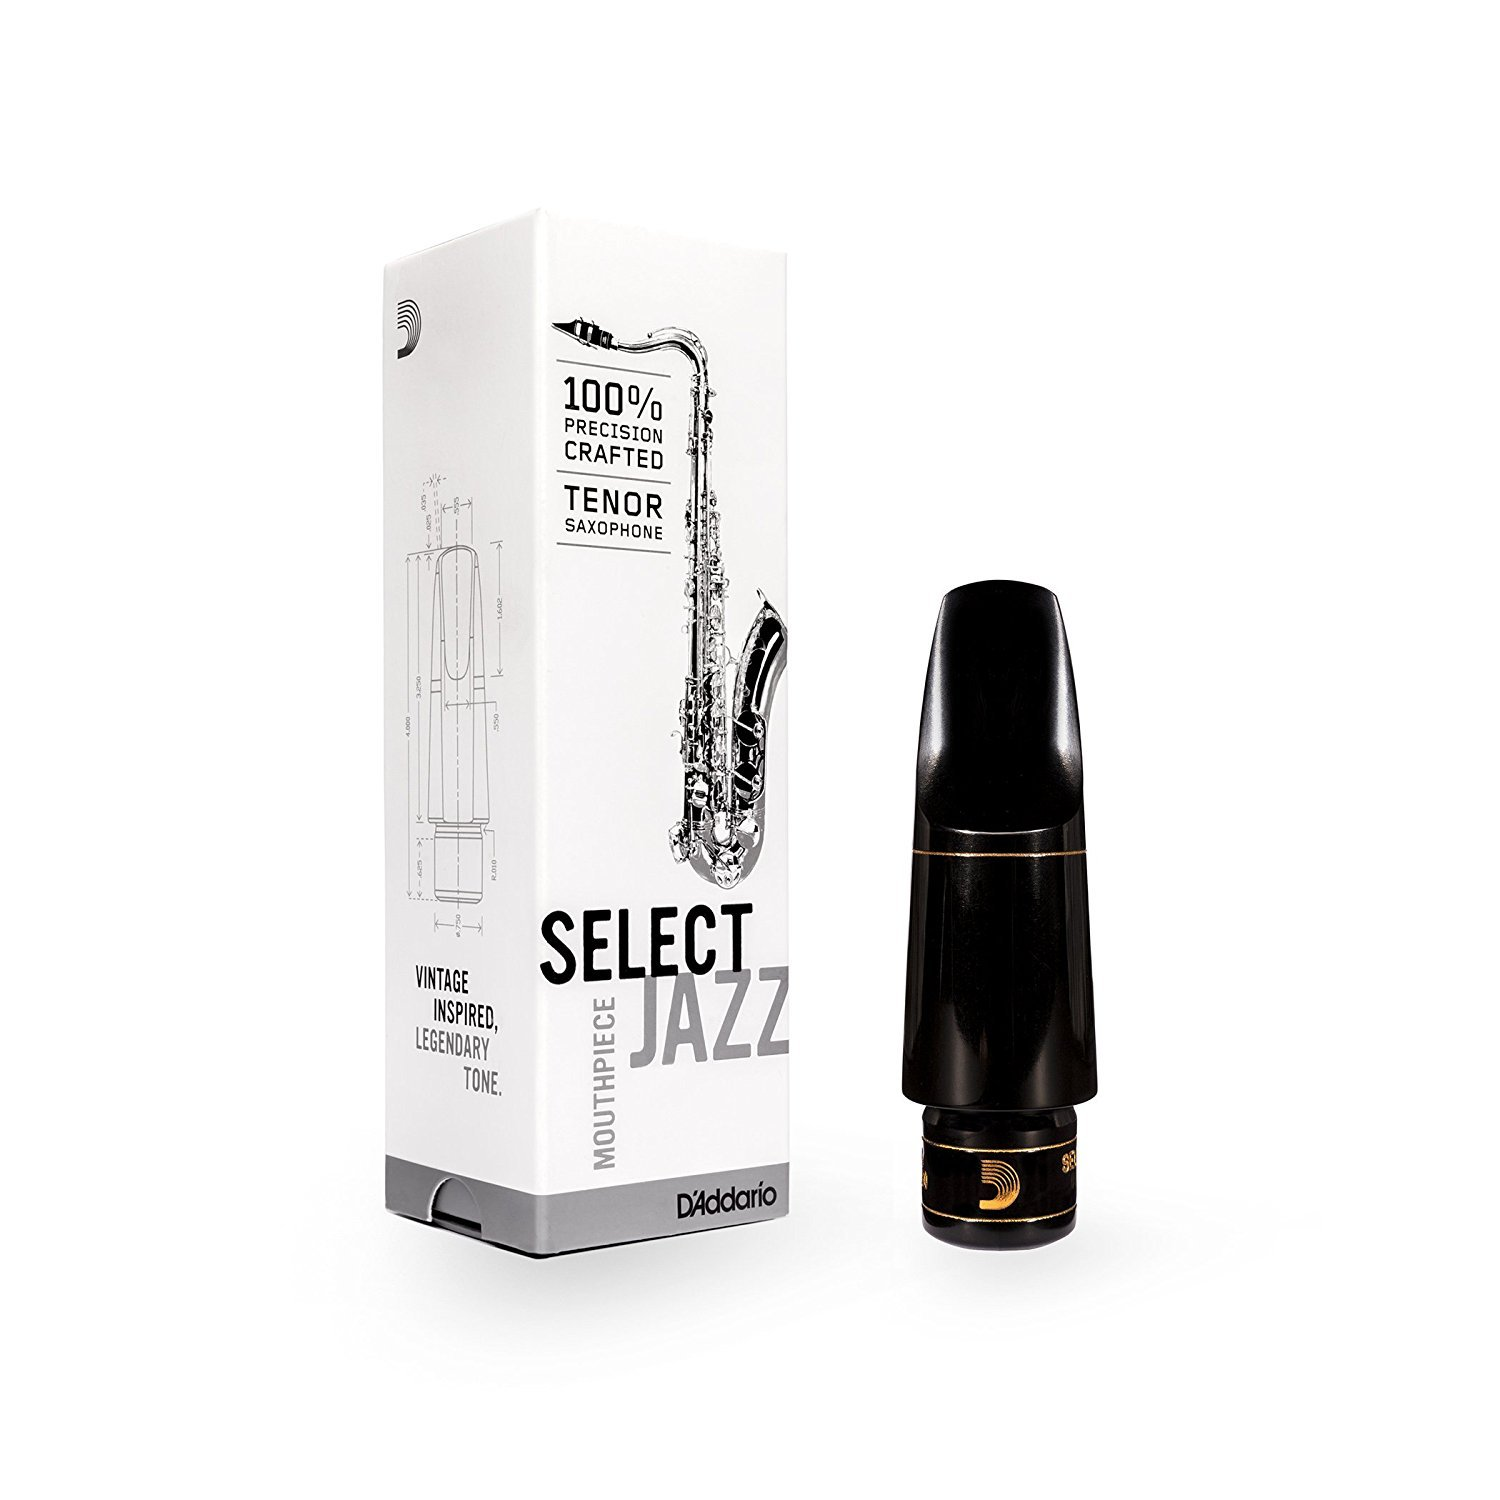 Rico MKS-D7M D'Addario Woodwinds MKS-D8M Tenor Saxophone Mouthpiece D'Addario &Co. Inc